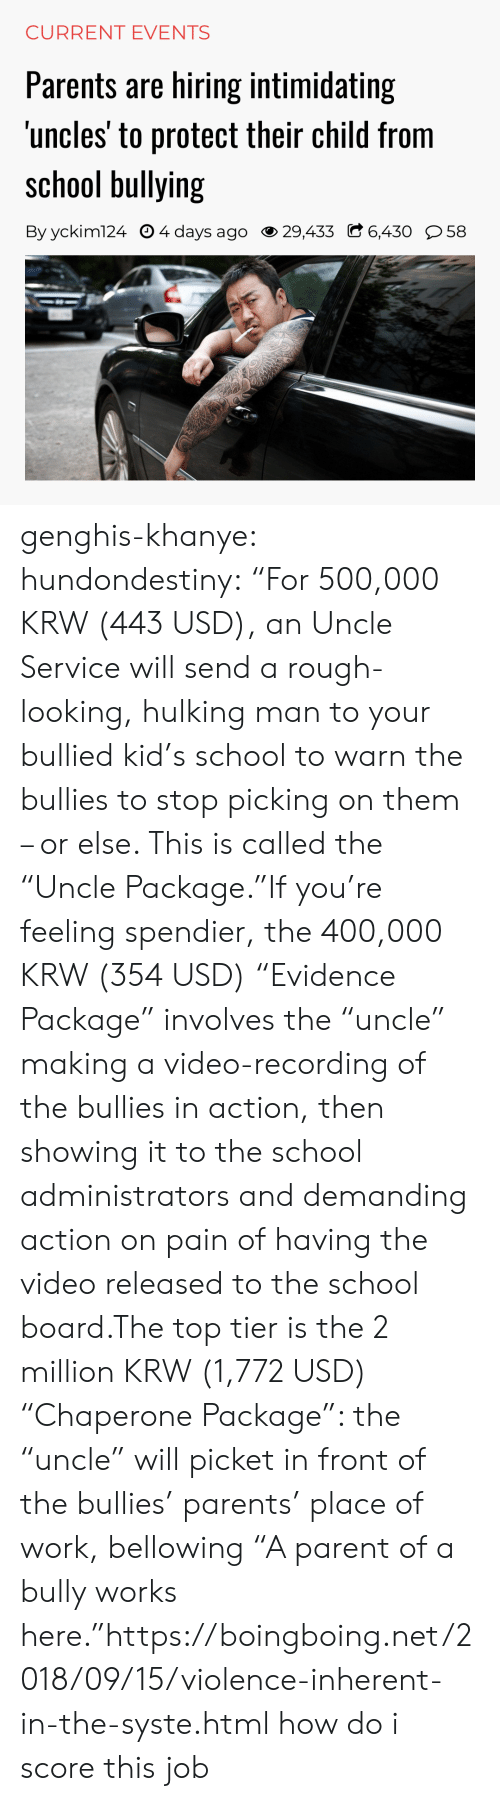 "current events: CURRENT EVENTS  Parents are hiring intimidating  uncles' to protect their child from  school bullying  By yckim124 O 4 days ago 29,433 C 6,430 58 genghis-khanye: hundondestiny: ""For 500,000 KRW (443 USD), an Uncle Service will send a rough-looking, hulking man to your bullied kid's school to warn the bullies to stop picking on them – or else. This is called the ""Uncle Package.""If you're feeling spendier, the 400,000 KRW (354 USD) ""Evidence Package"" involves the ""uncle"" making a video-recording of the bullies in action, then showing it to the school administrators and demanding action on pain of having the video released to the school board.The top tier is the 2 million KRW (1,772 USD) ""Chaperone Package"": the ""uncle"" will picket in front of the bullies' parents' place of work, bellowing ""A parent of a bully works here.""https://boingboing.net/2018/09/15/violence-inherent-in-the-syste.html  how do i score this job"